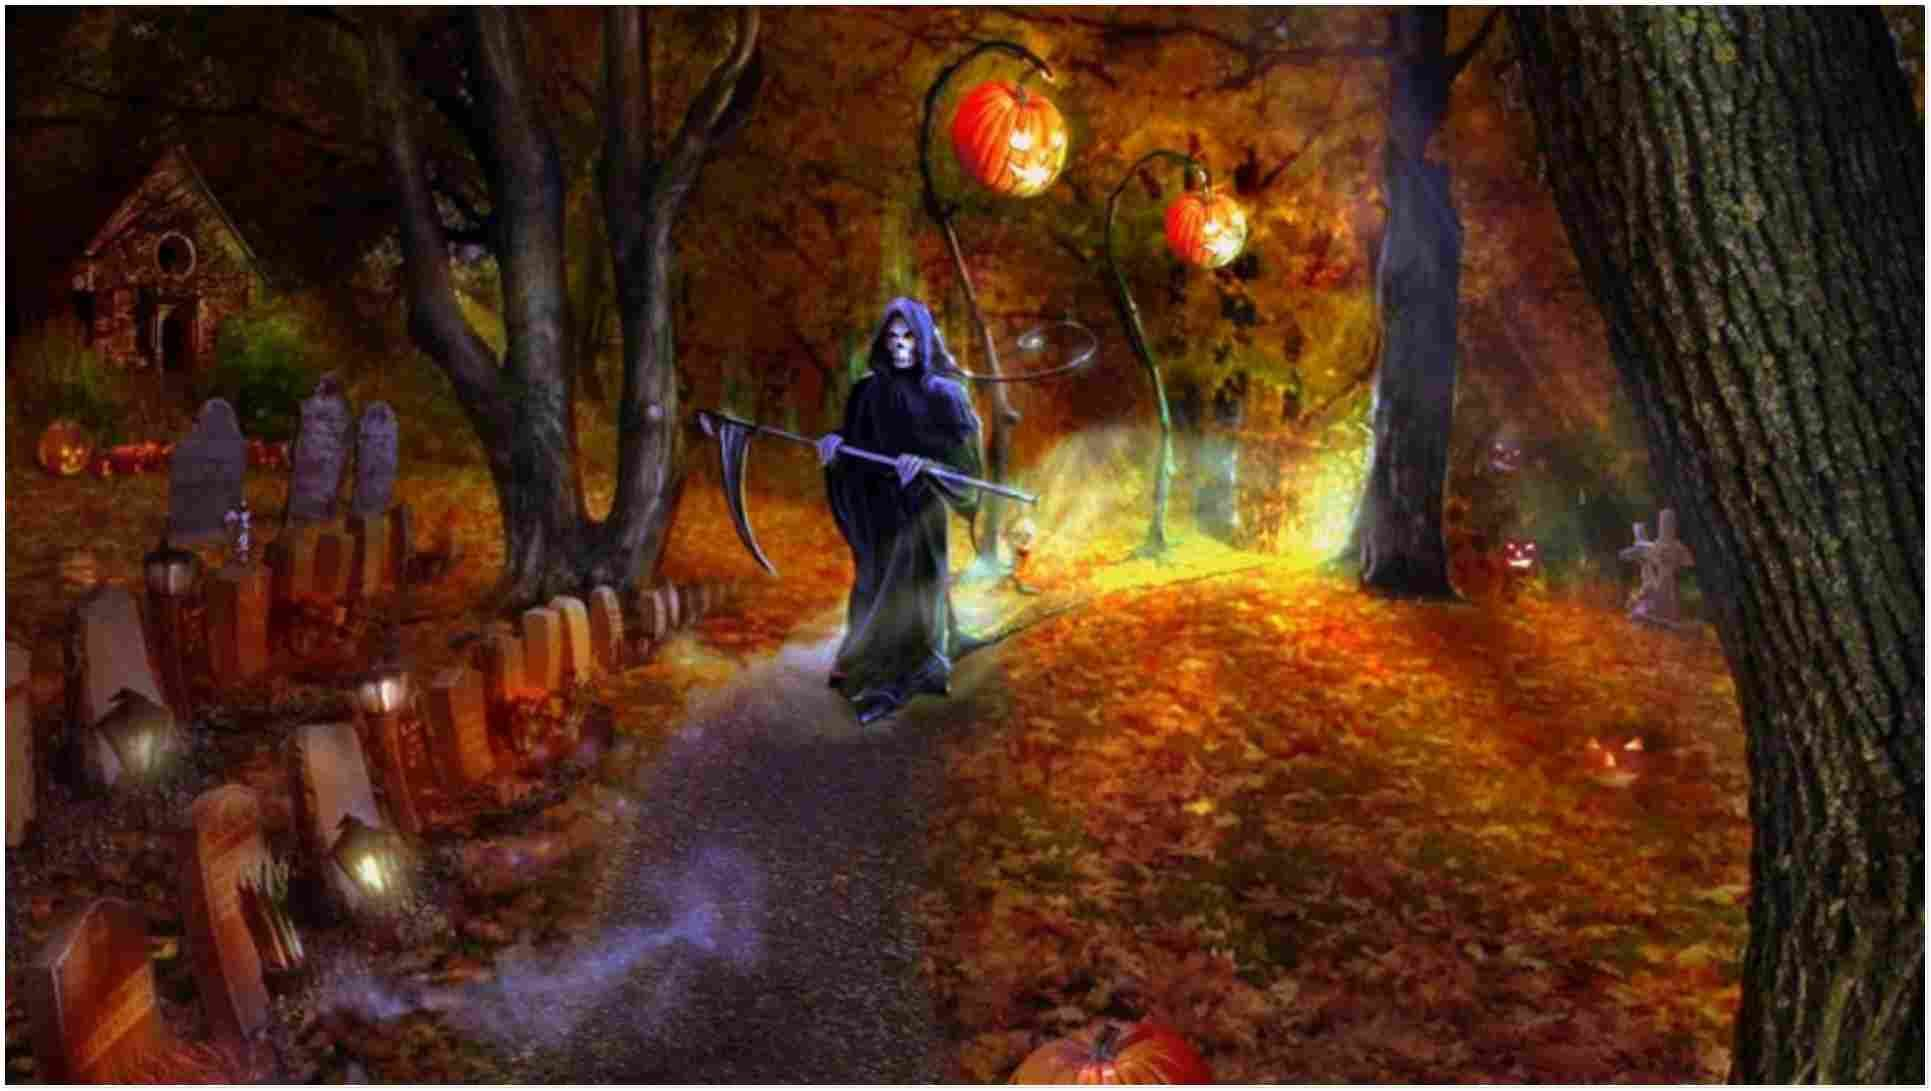 Top 15 Halloween Hd Wallpapers In 2020 Halloween Wallpaper Halloween Desktop Wallpaper Halloween Backgrounds